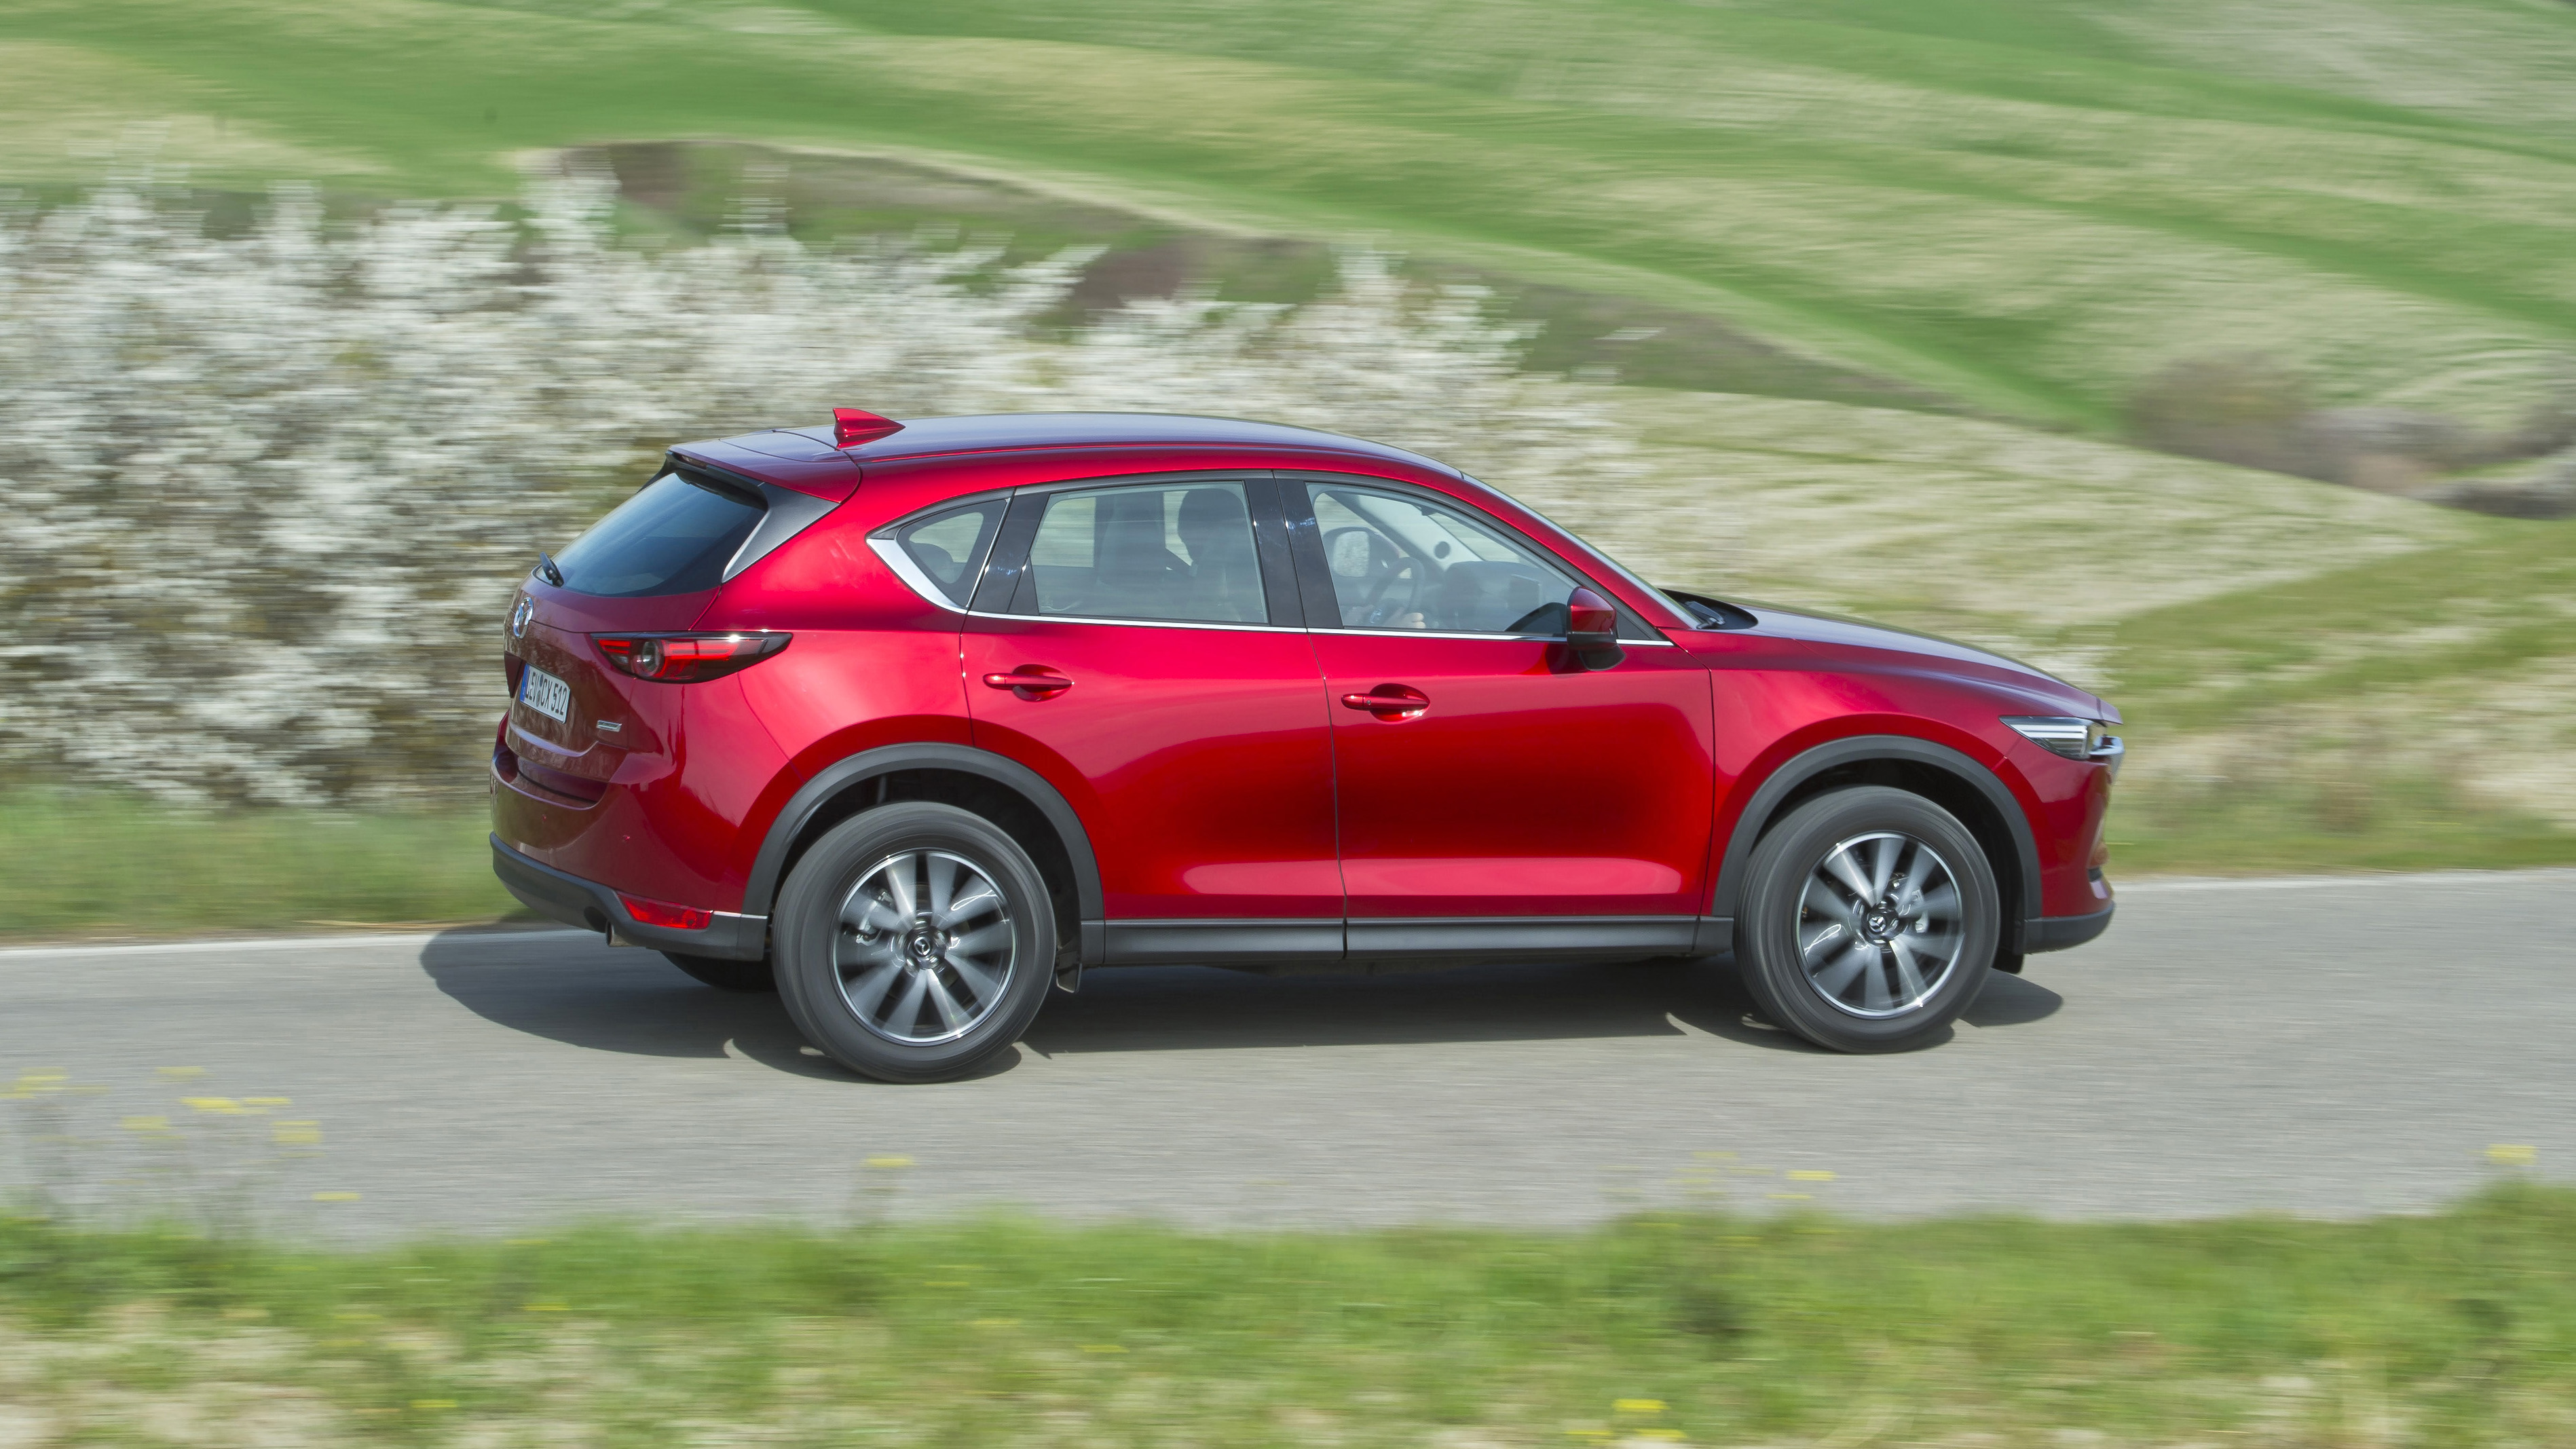 2018 mazda cx 5 review top gear. Black Bedroom Furniture Sets. Home Design Ideas